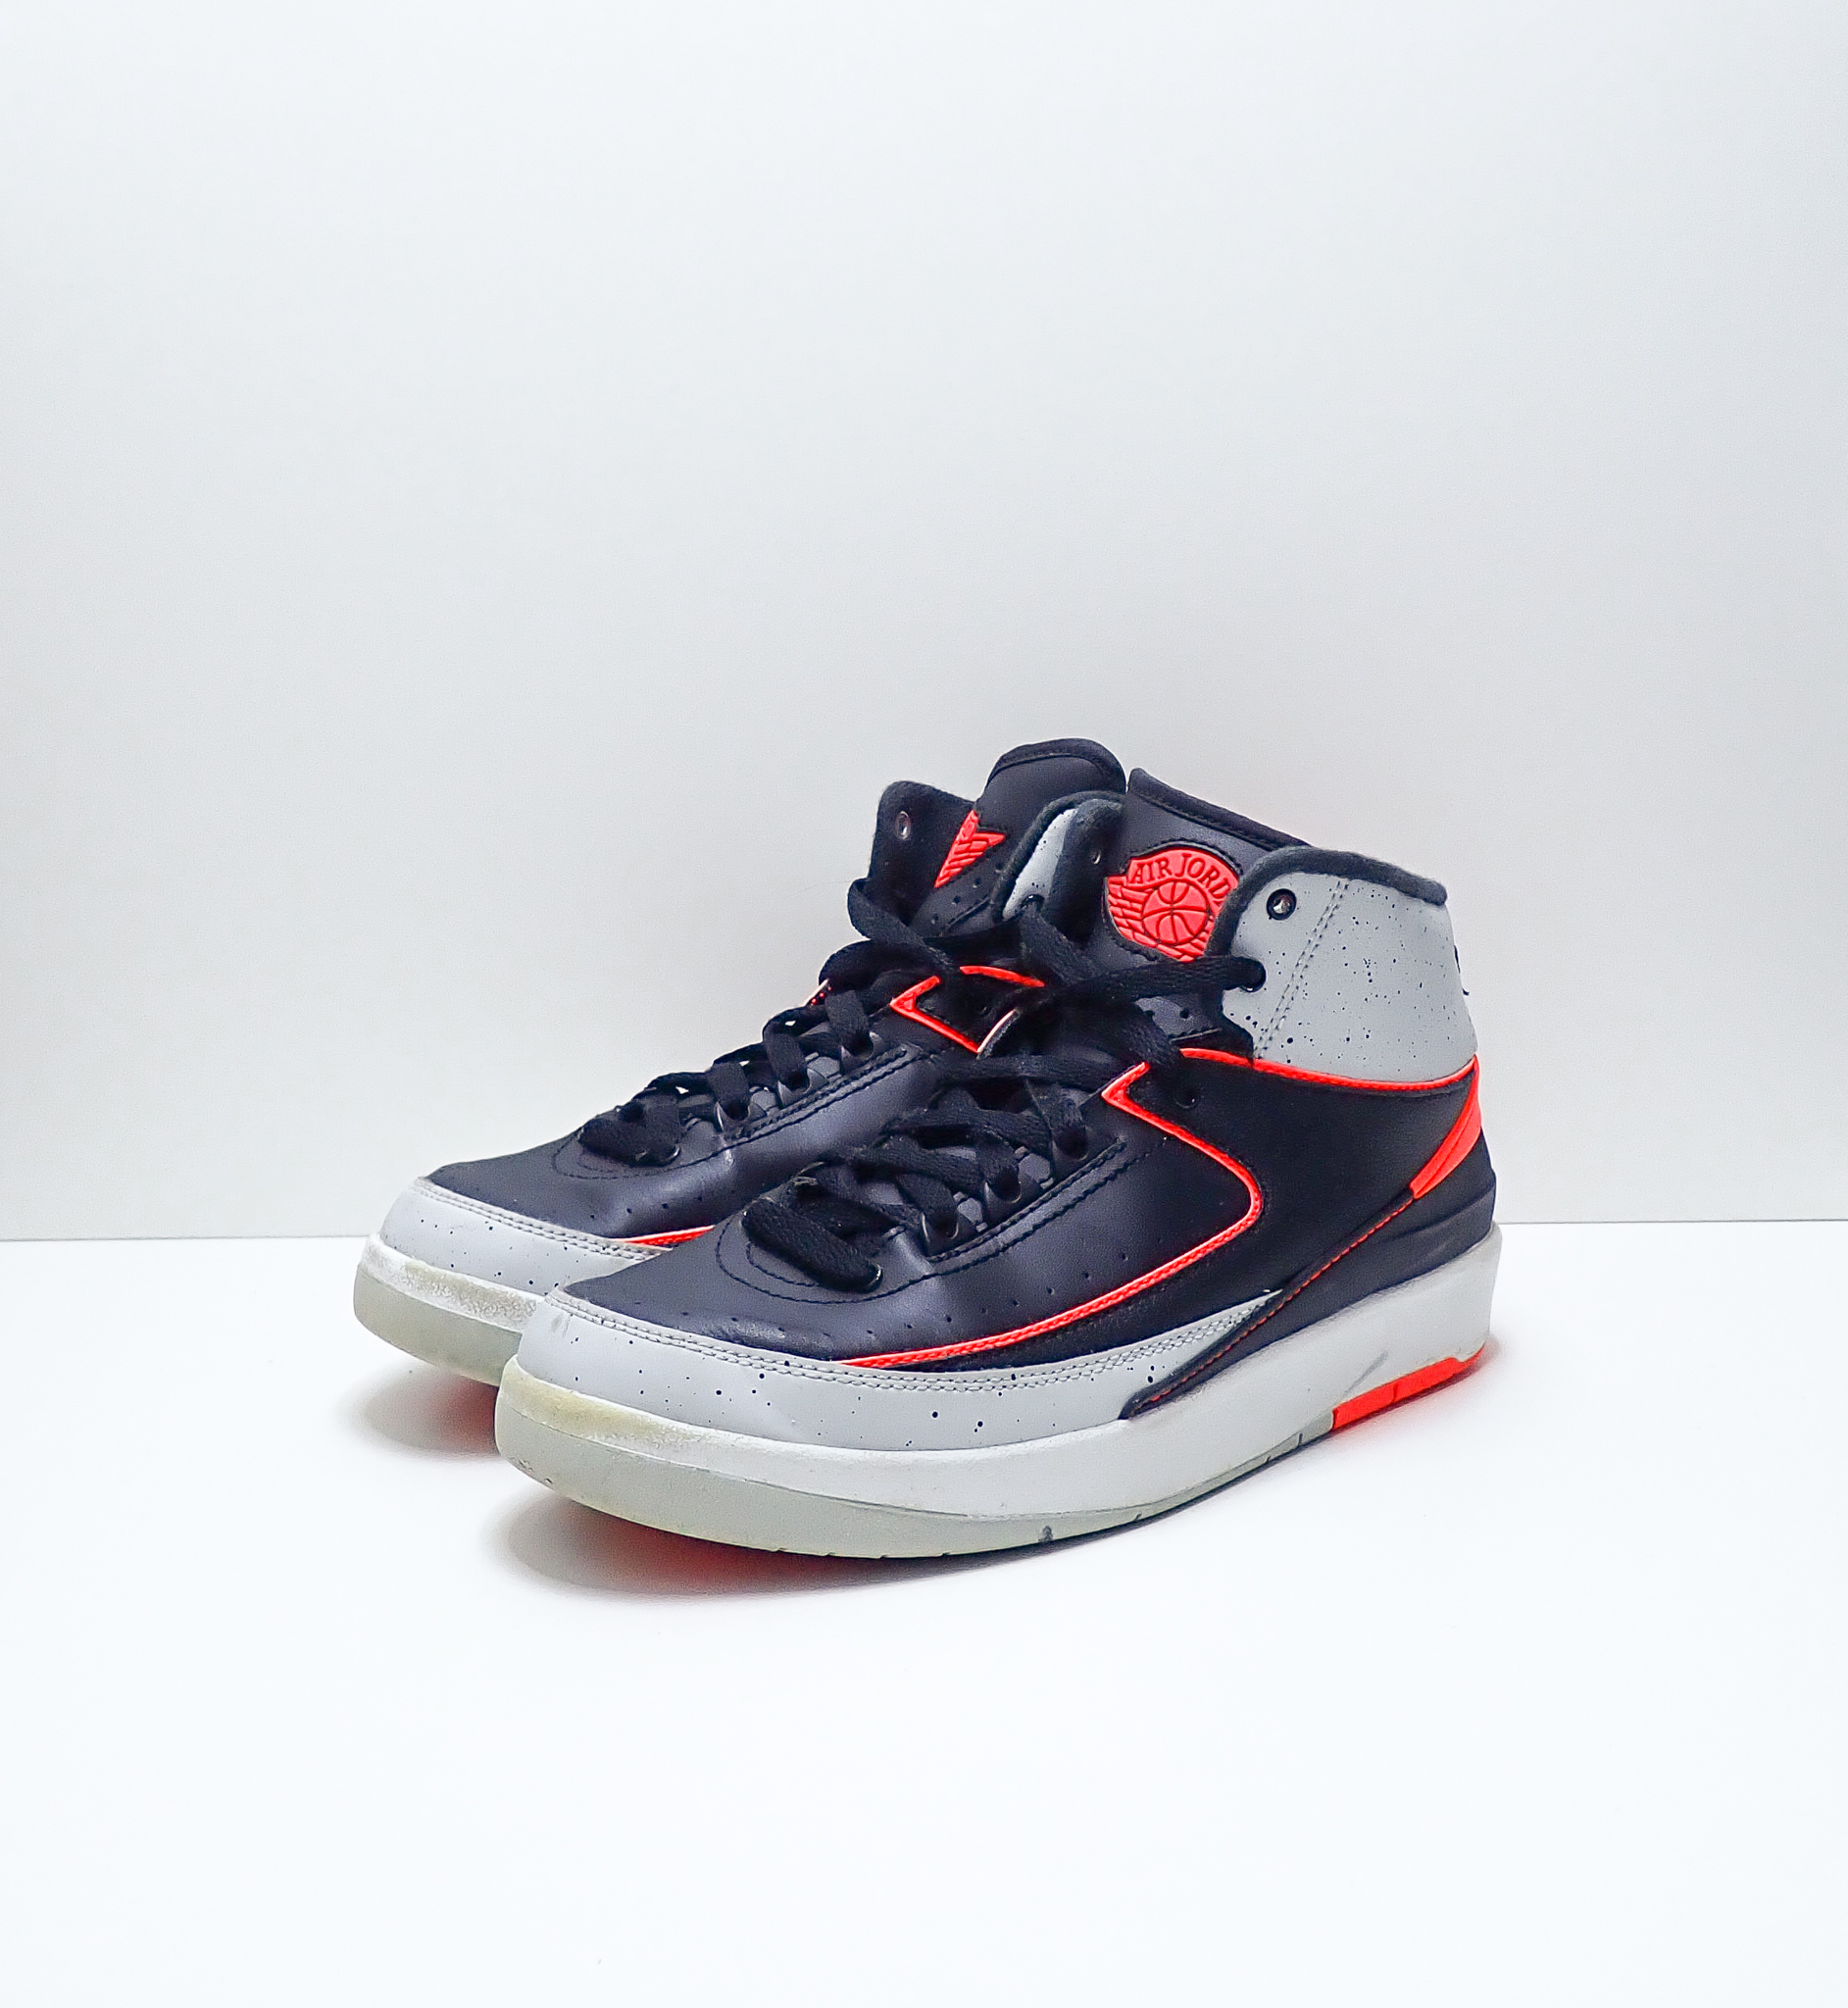 Jordan Brand Air Jordan 2 Retro (GS)